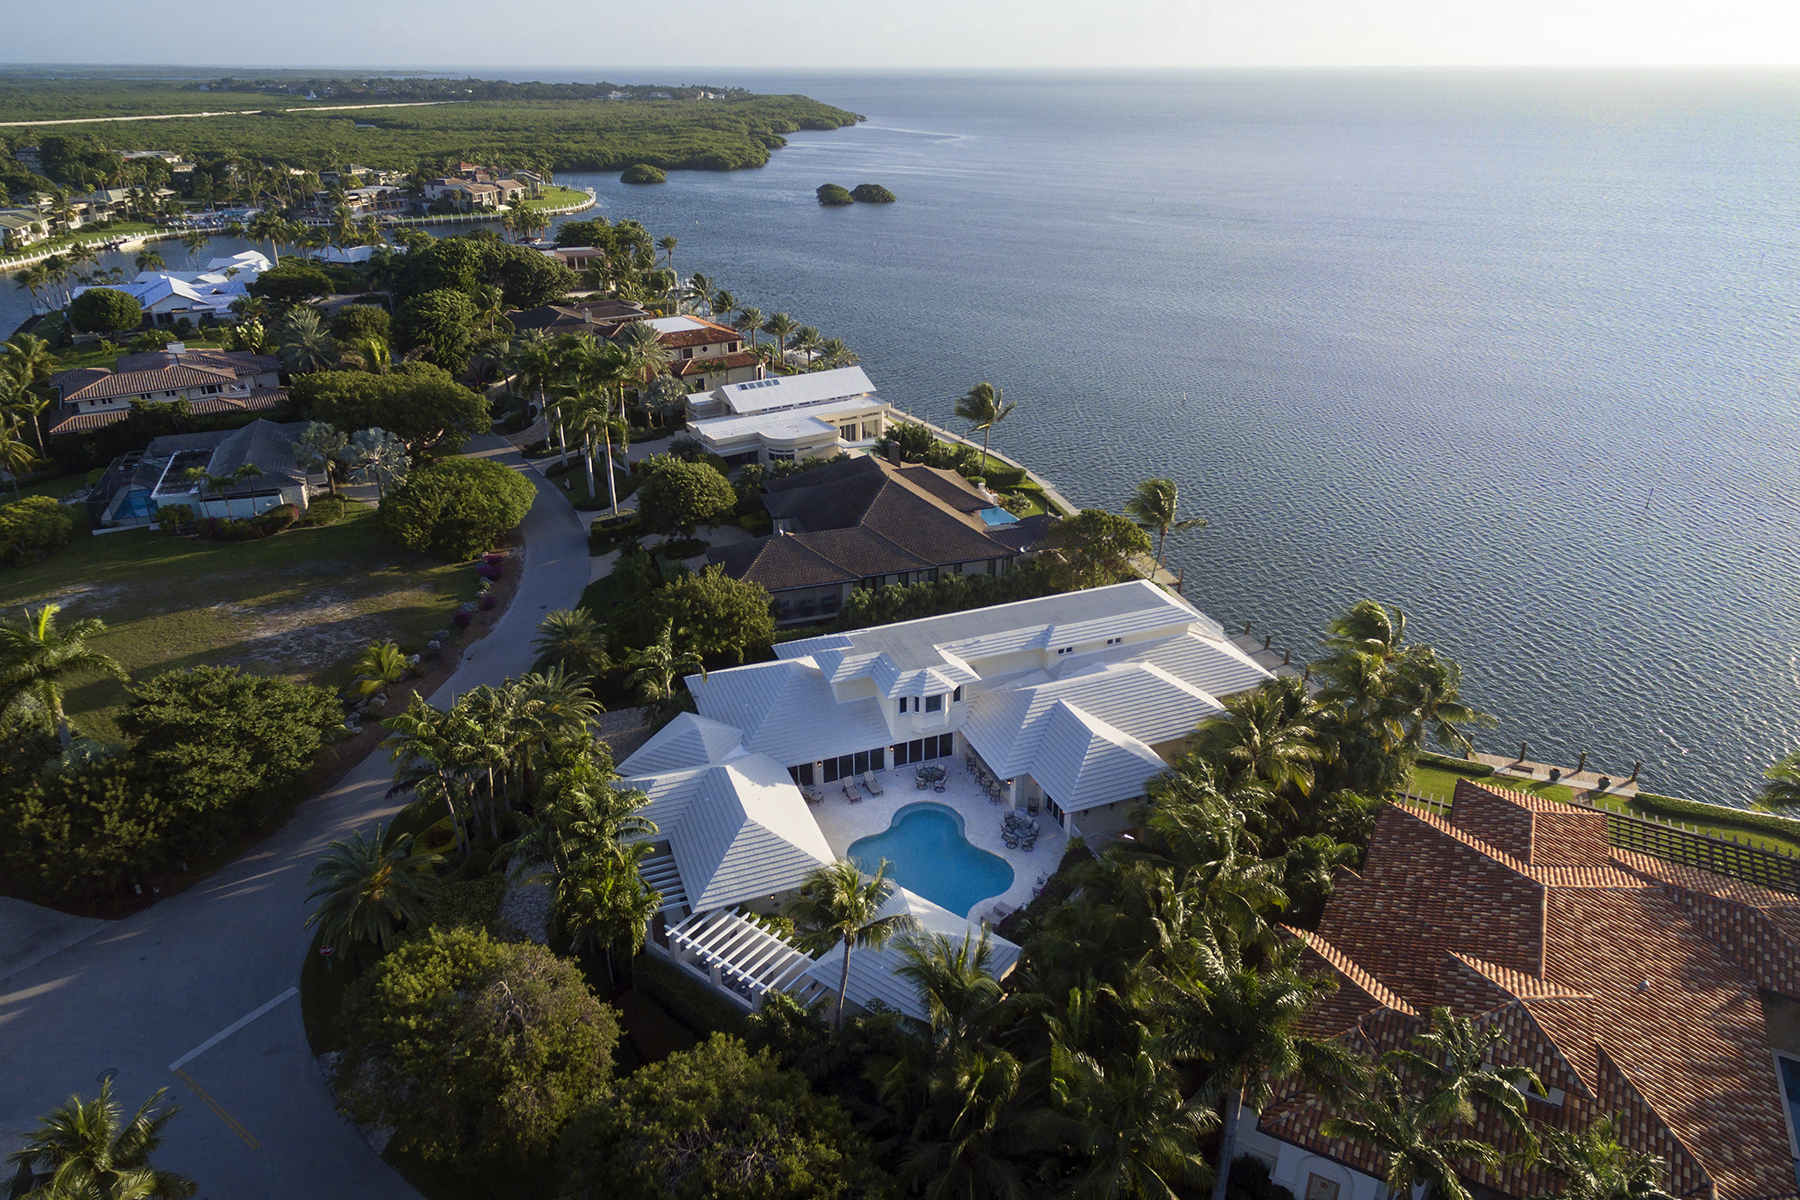 Single Family Home for Sale at Extraordinary Oceanfront Home at Ocean Reef 24 Angelfish Cay Drive Ocean Reef Community, Key Largo, Florida, 33037 United States